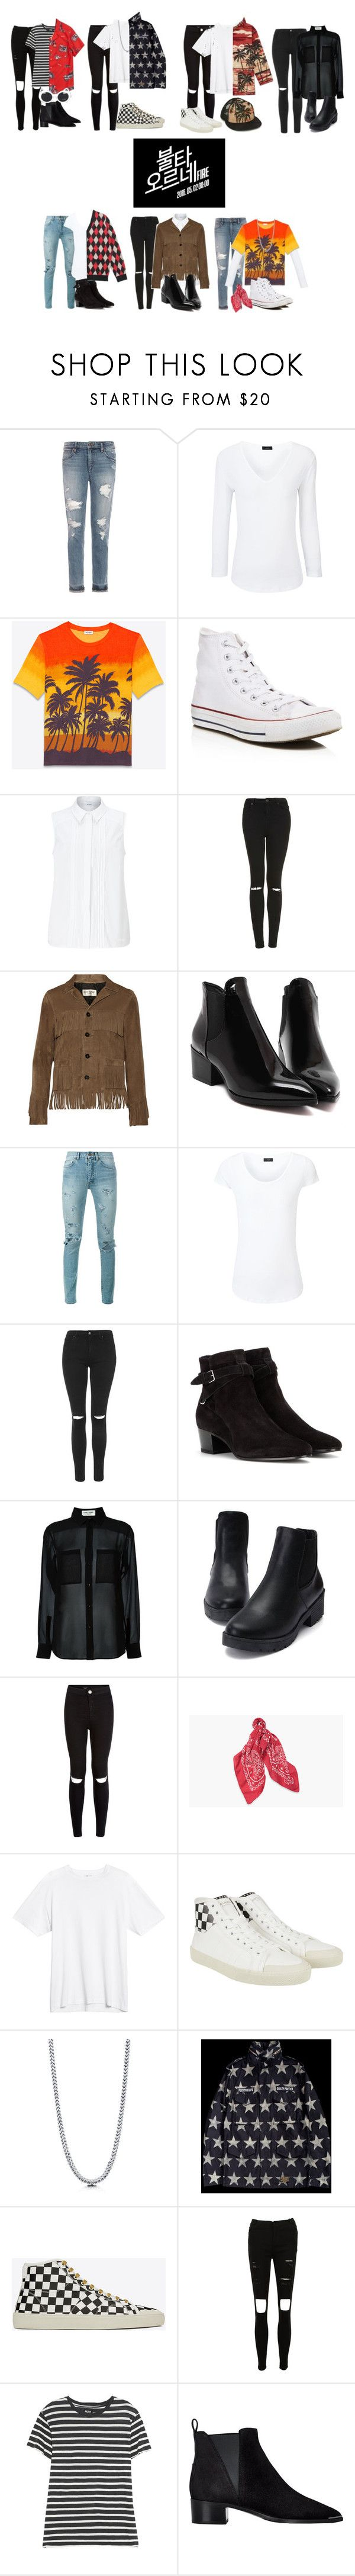 """""""BTS(방탄소년단) _ FIRE (불타오르네)"""" by yonce4park ❤ liked on Polyvore featuring Joe's Jeans, Joseph, Yves Saint Laurent, Converse, John Lewis, Topshop, New Look, BERRICLE, NLST and Acne Studios"""